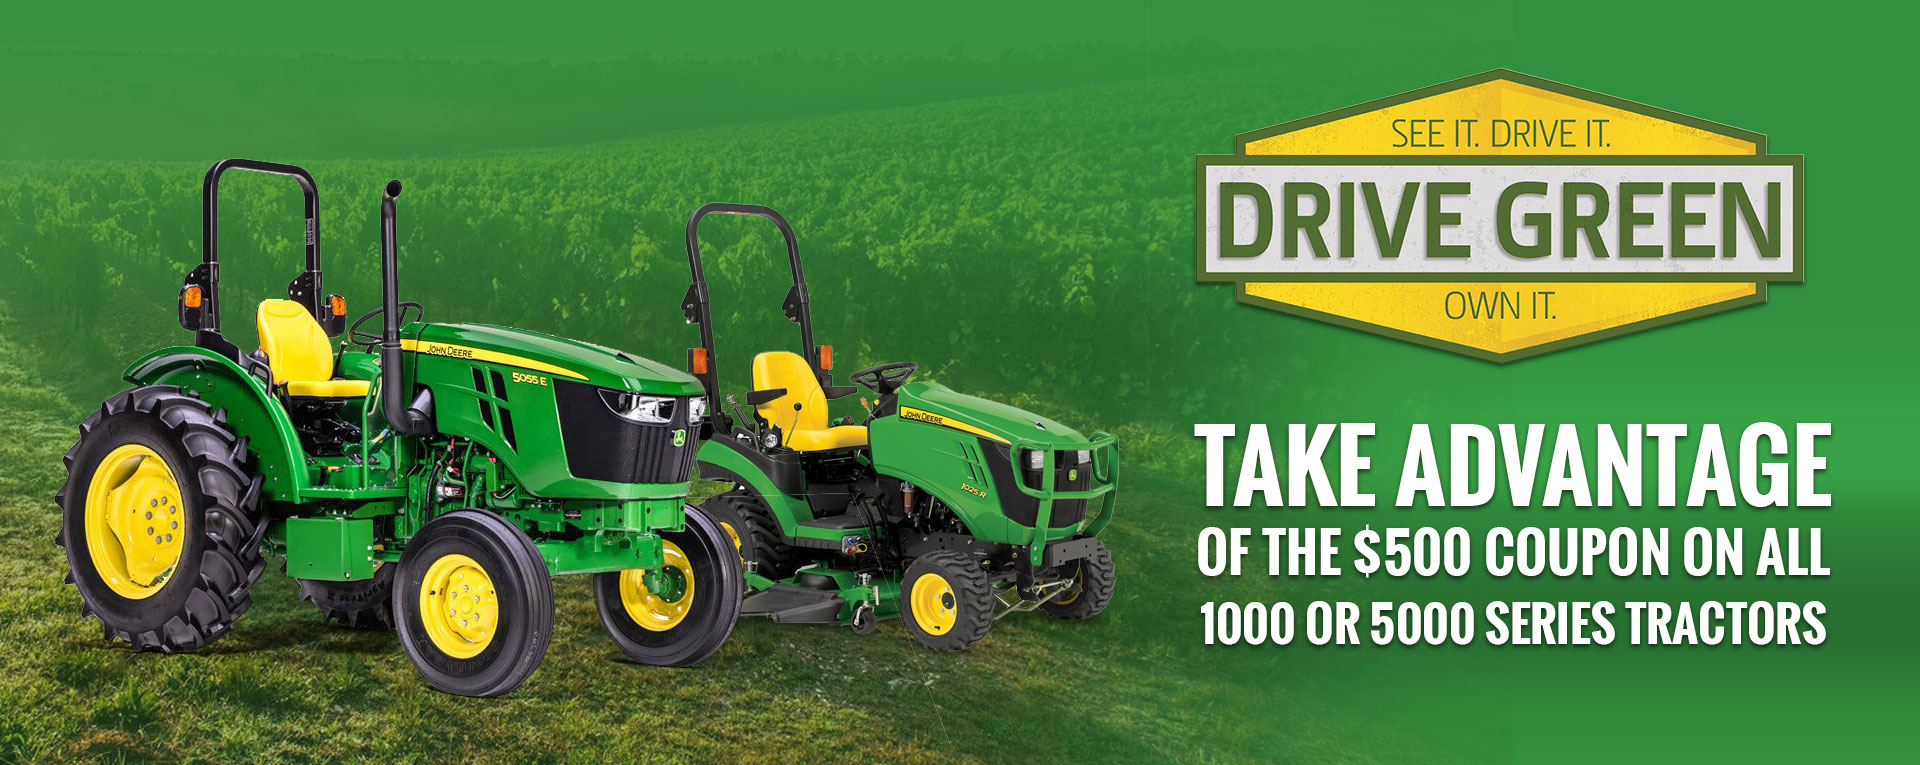 Drive Green - Save 500 on 1000 and 5000 series